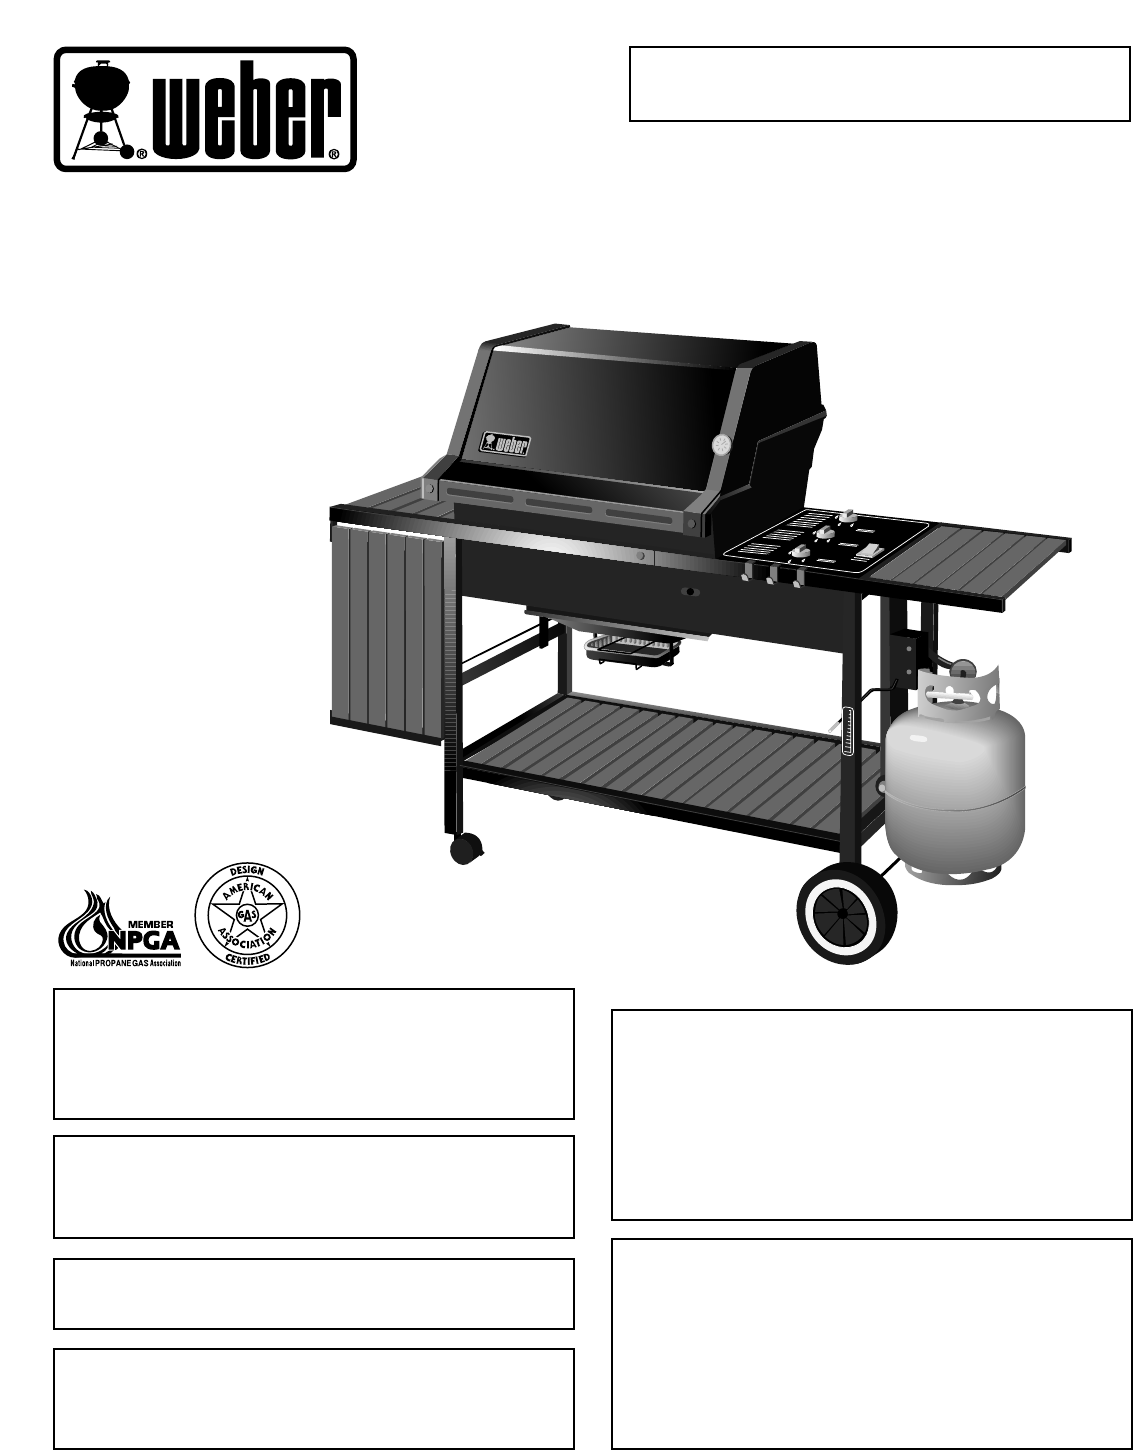 weber gas grill 2300 user guide. Black Bedroom Furniture Sets. Home Design Ideas